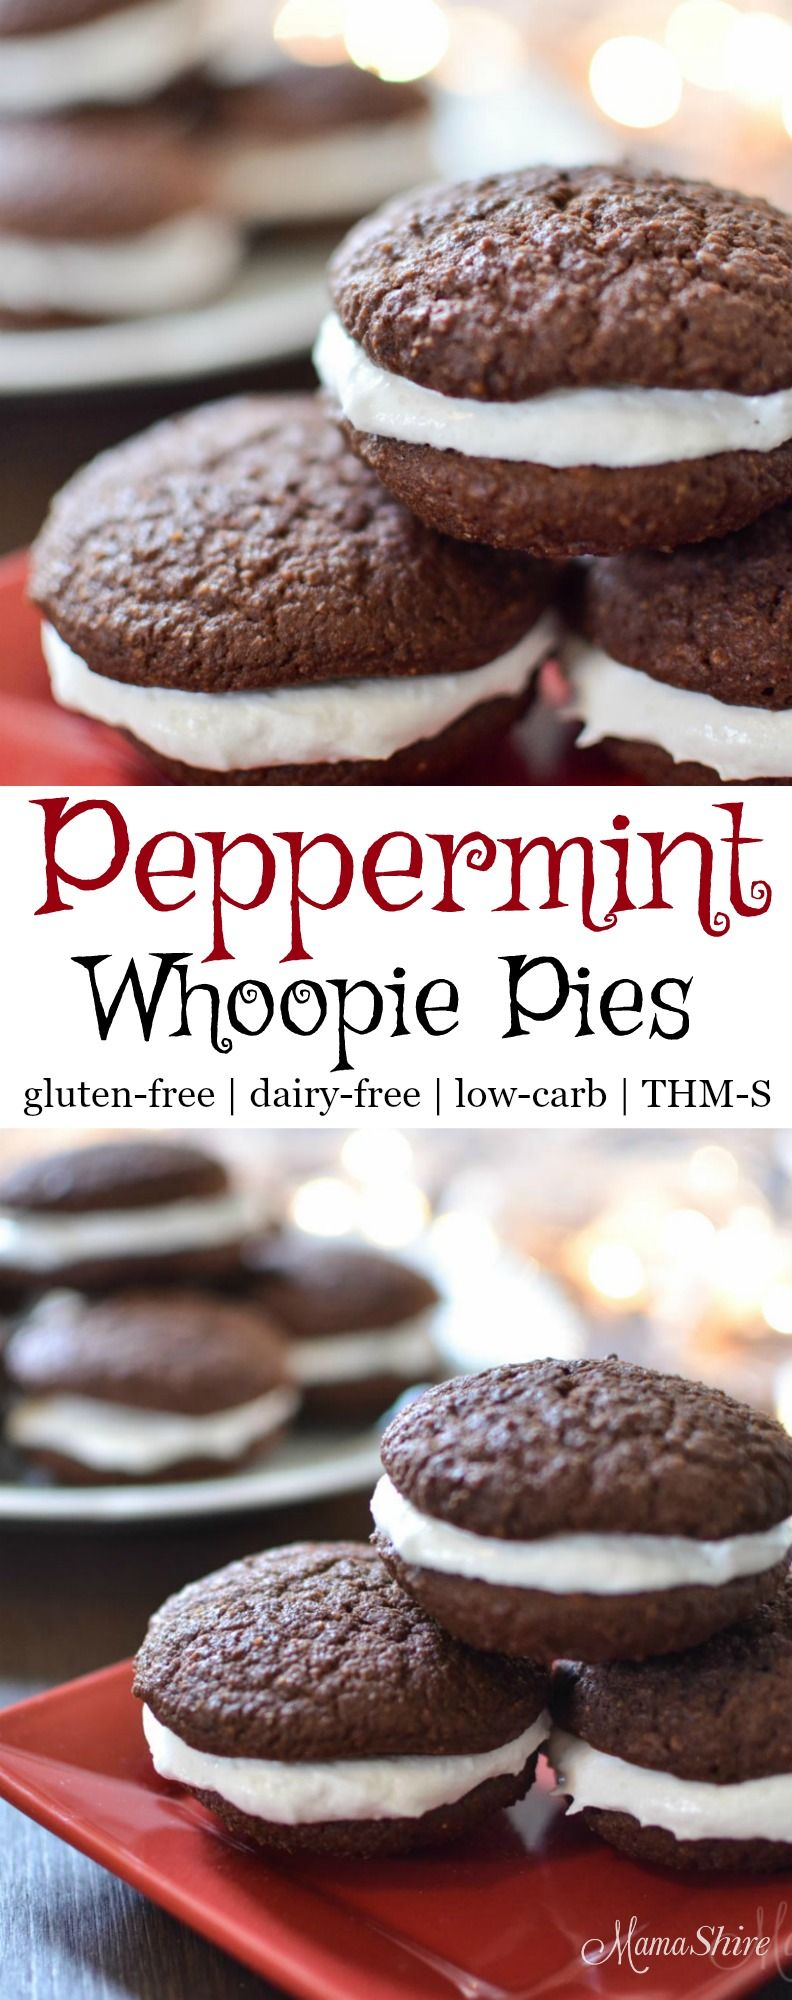 Peppermint Whoopie Pies Recipe Dairy free low carb